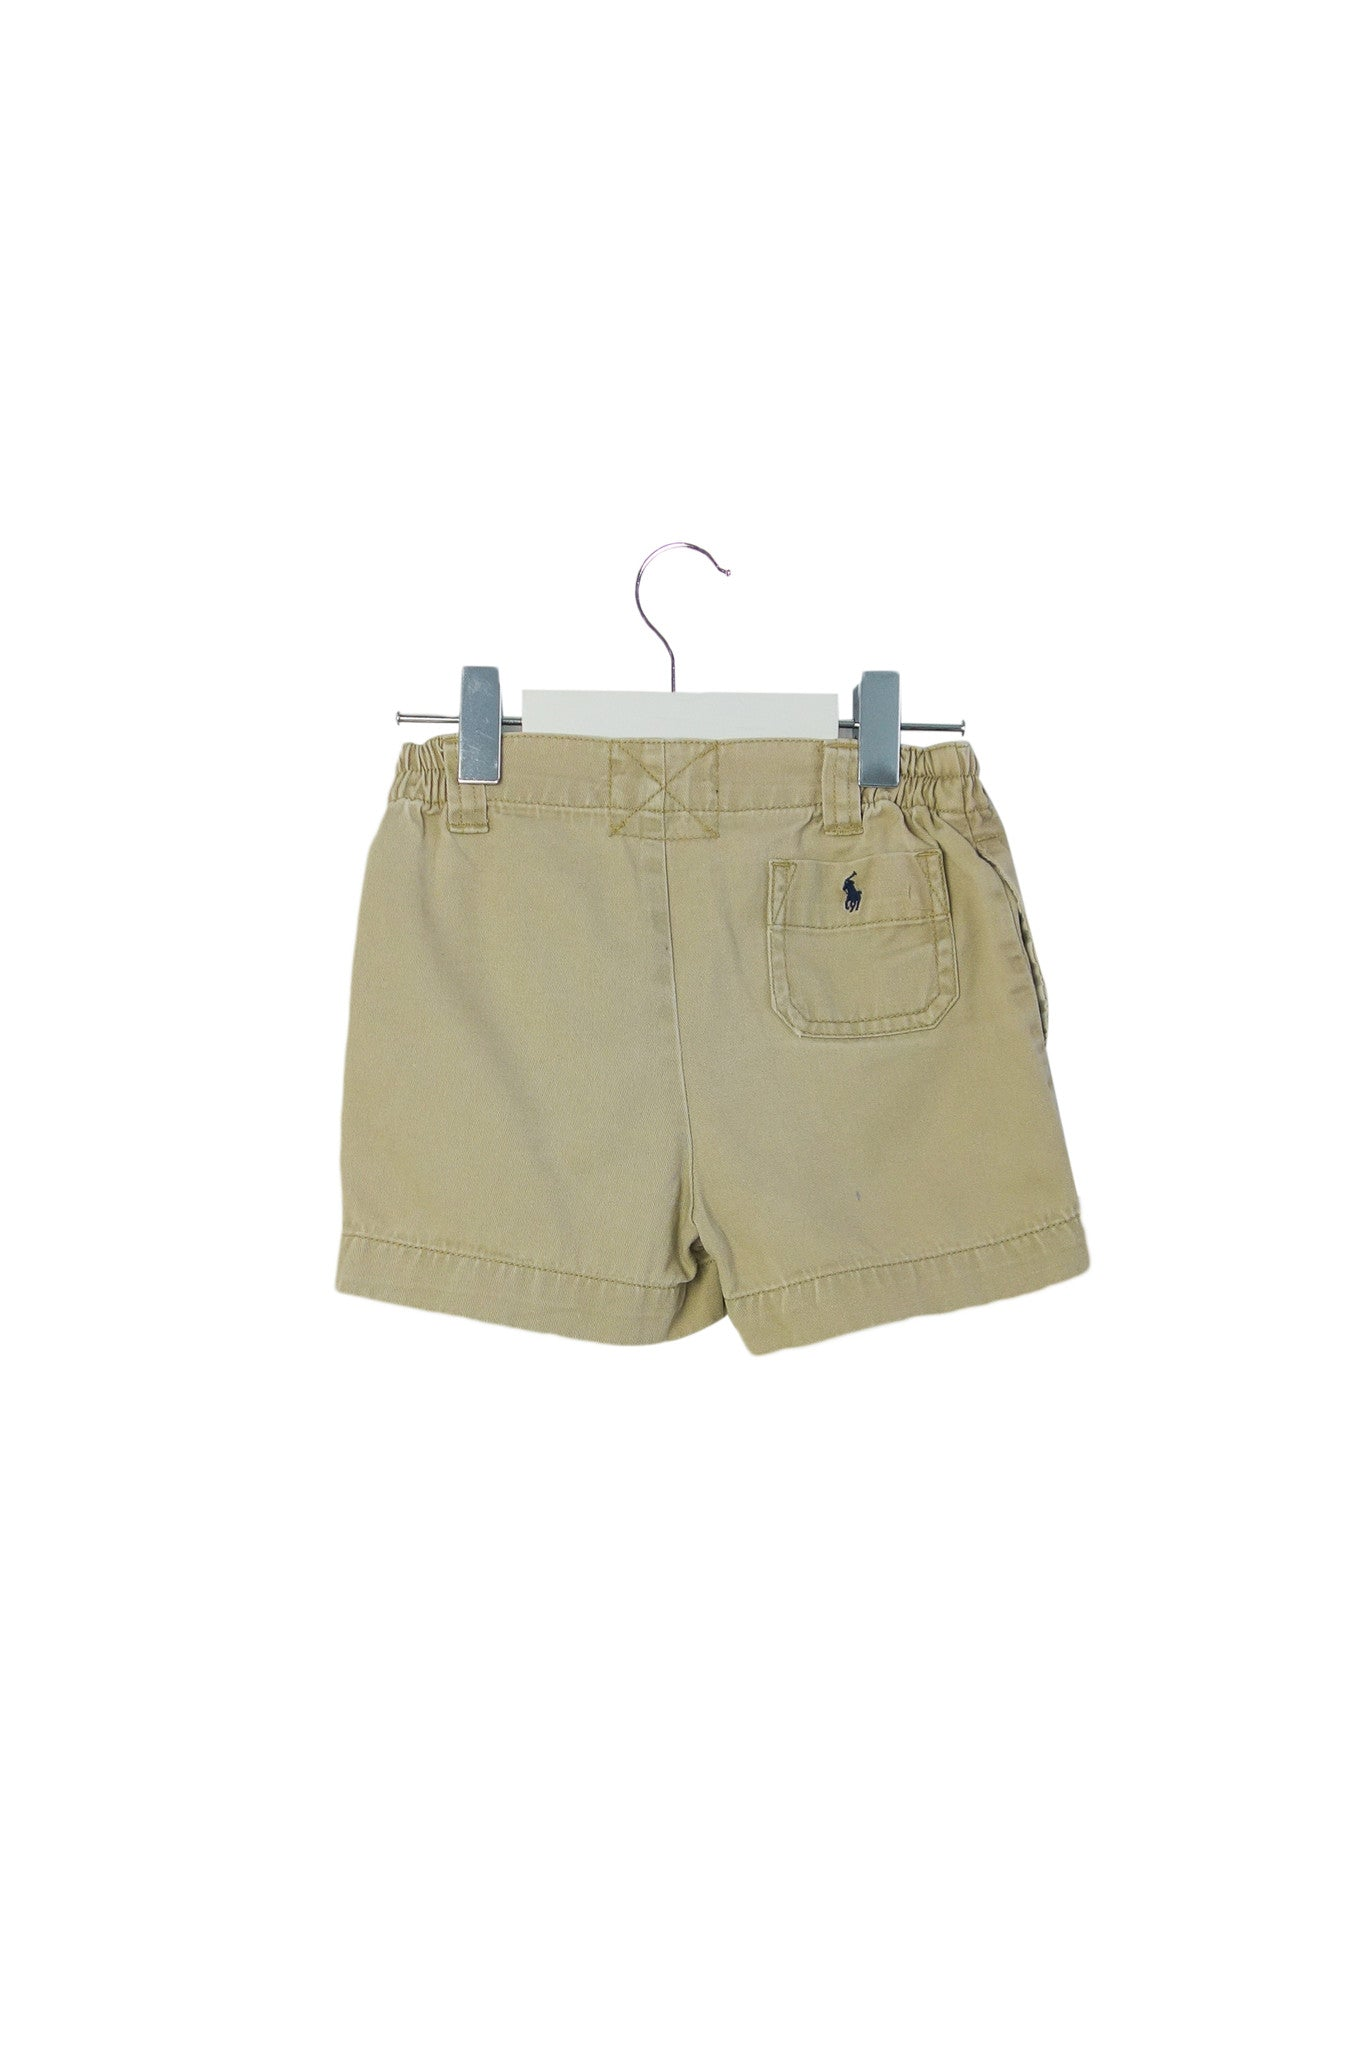 10003234 Polo Ralph Lauren Baby~Shorts 12-18M (80 cm) at Retykle